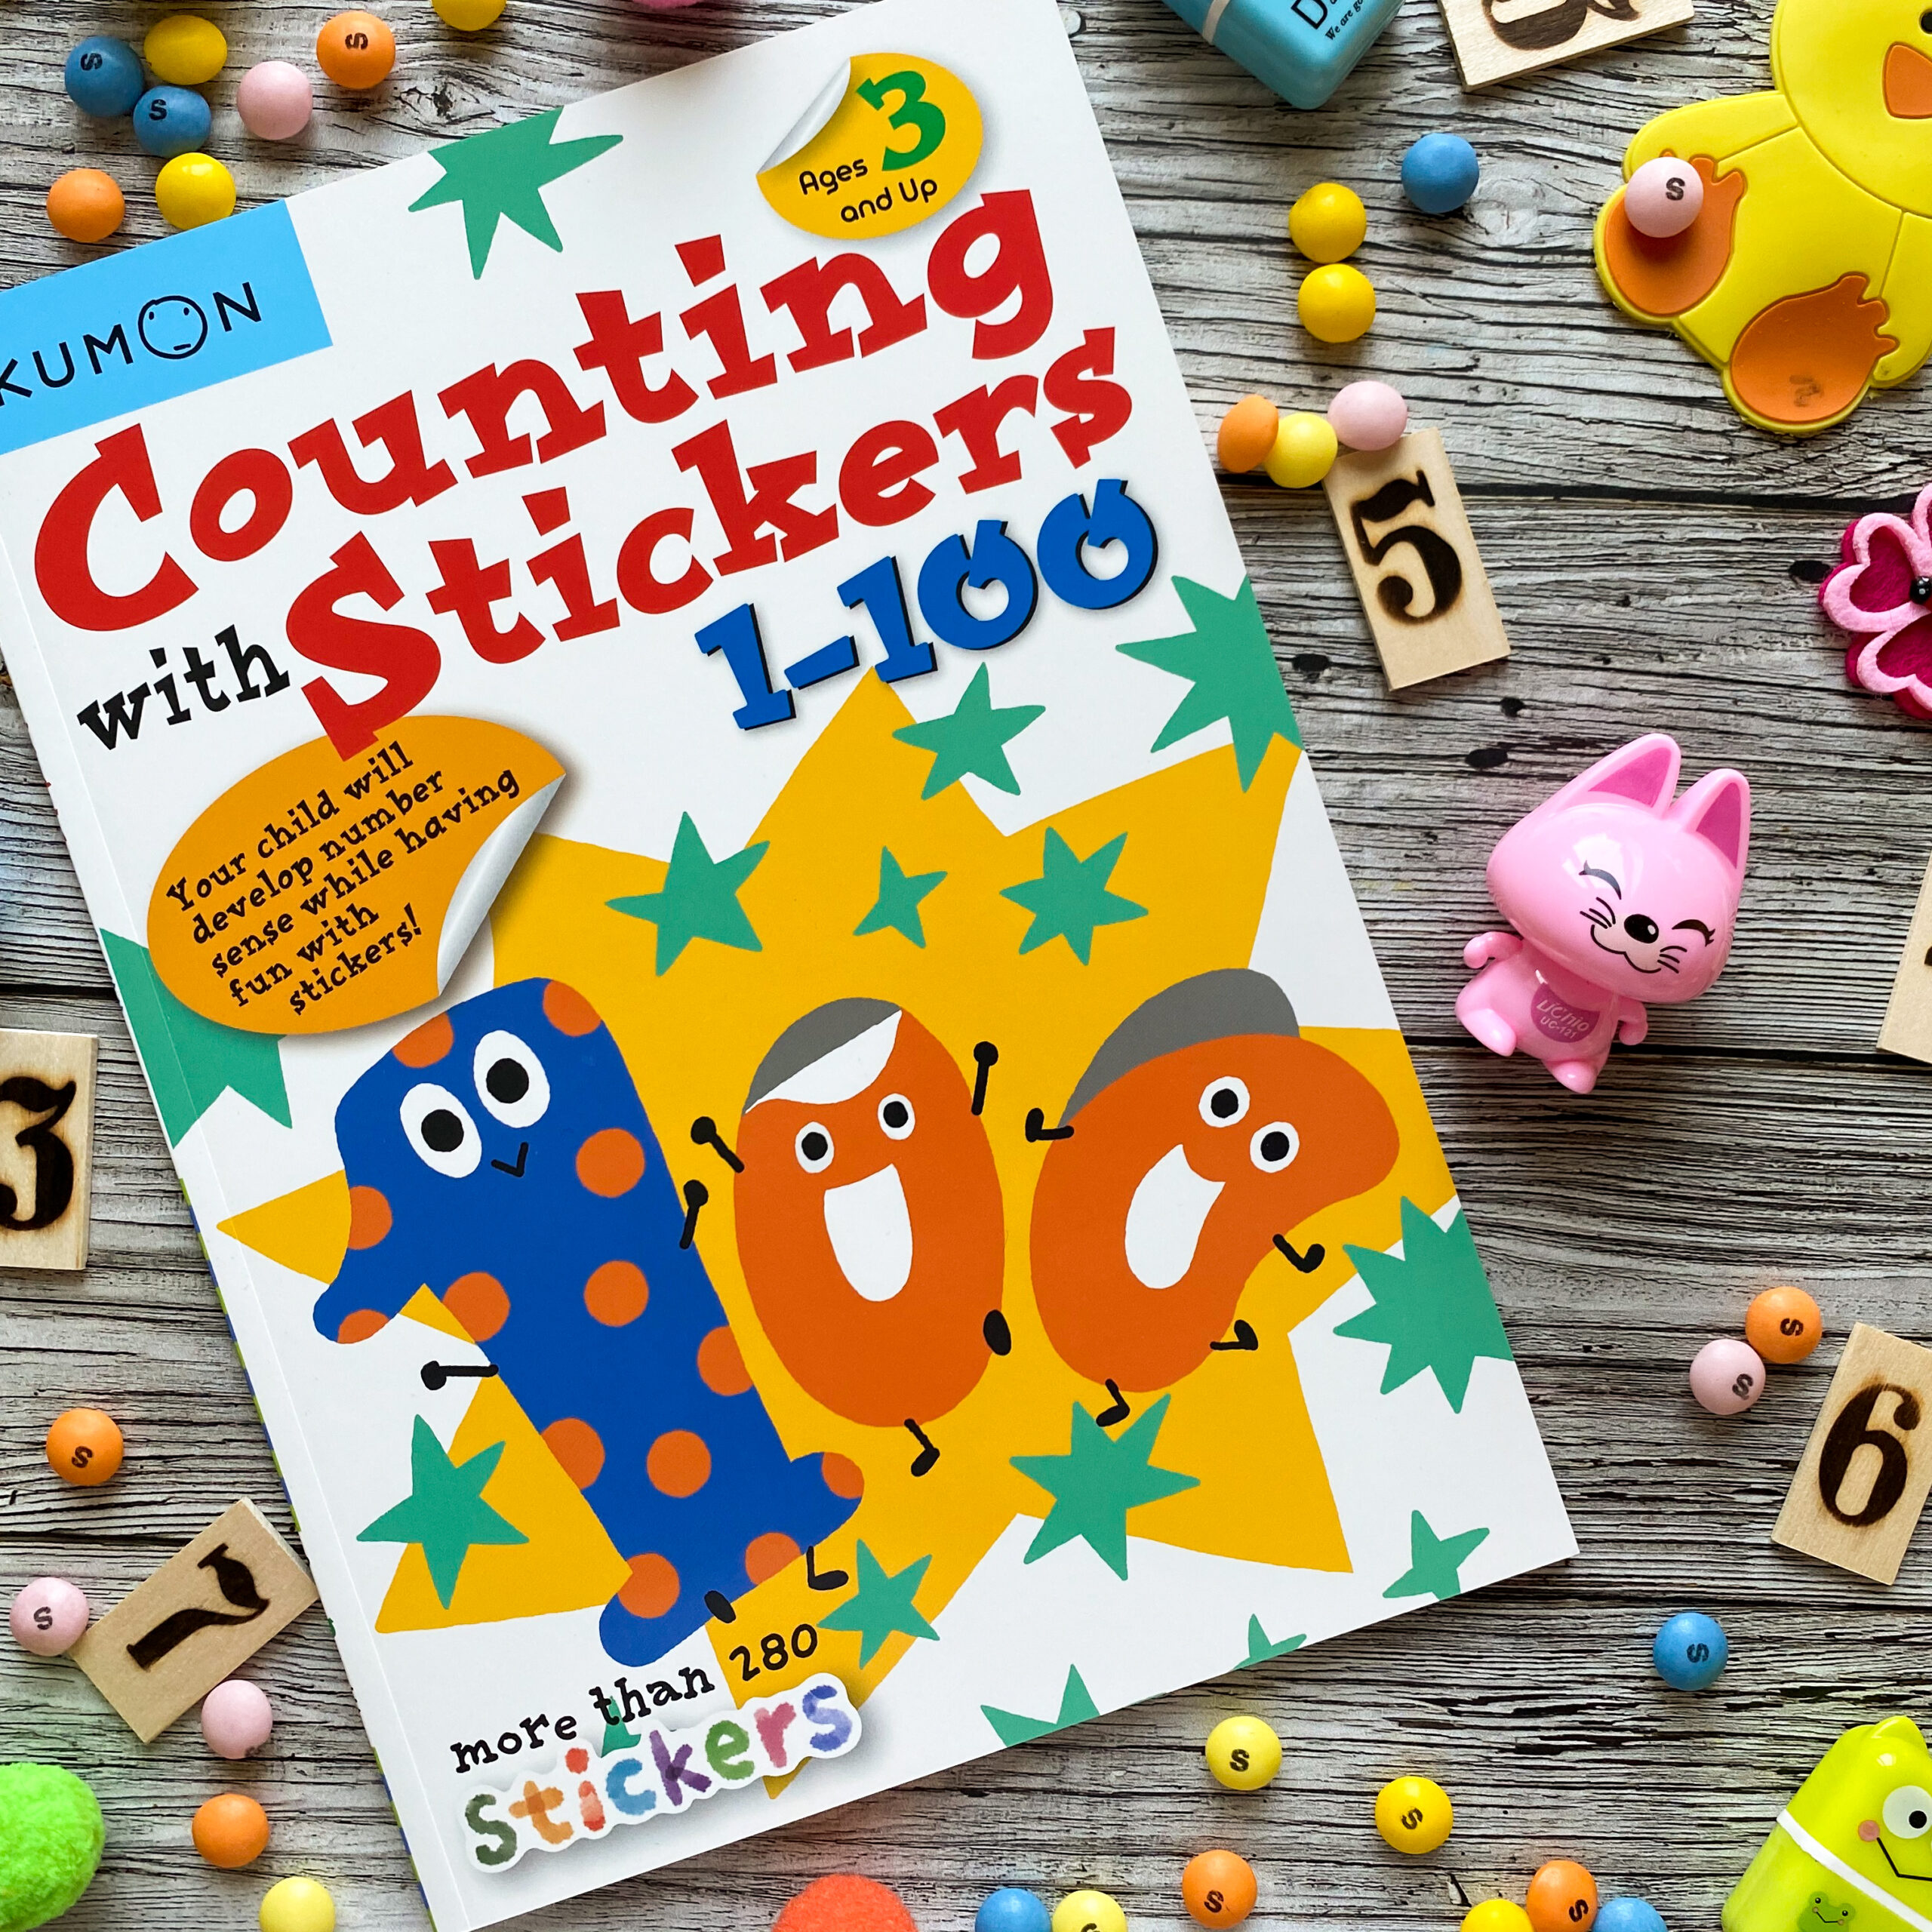 Наклейки Countng With Stickers 1 – 100